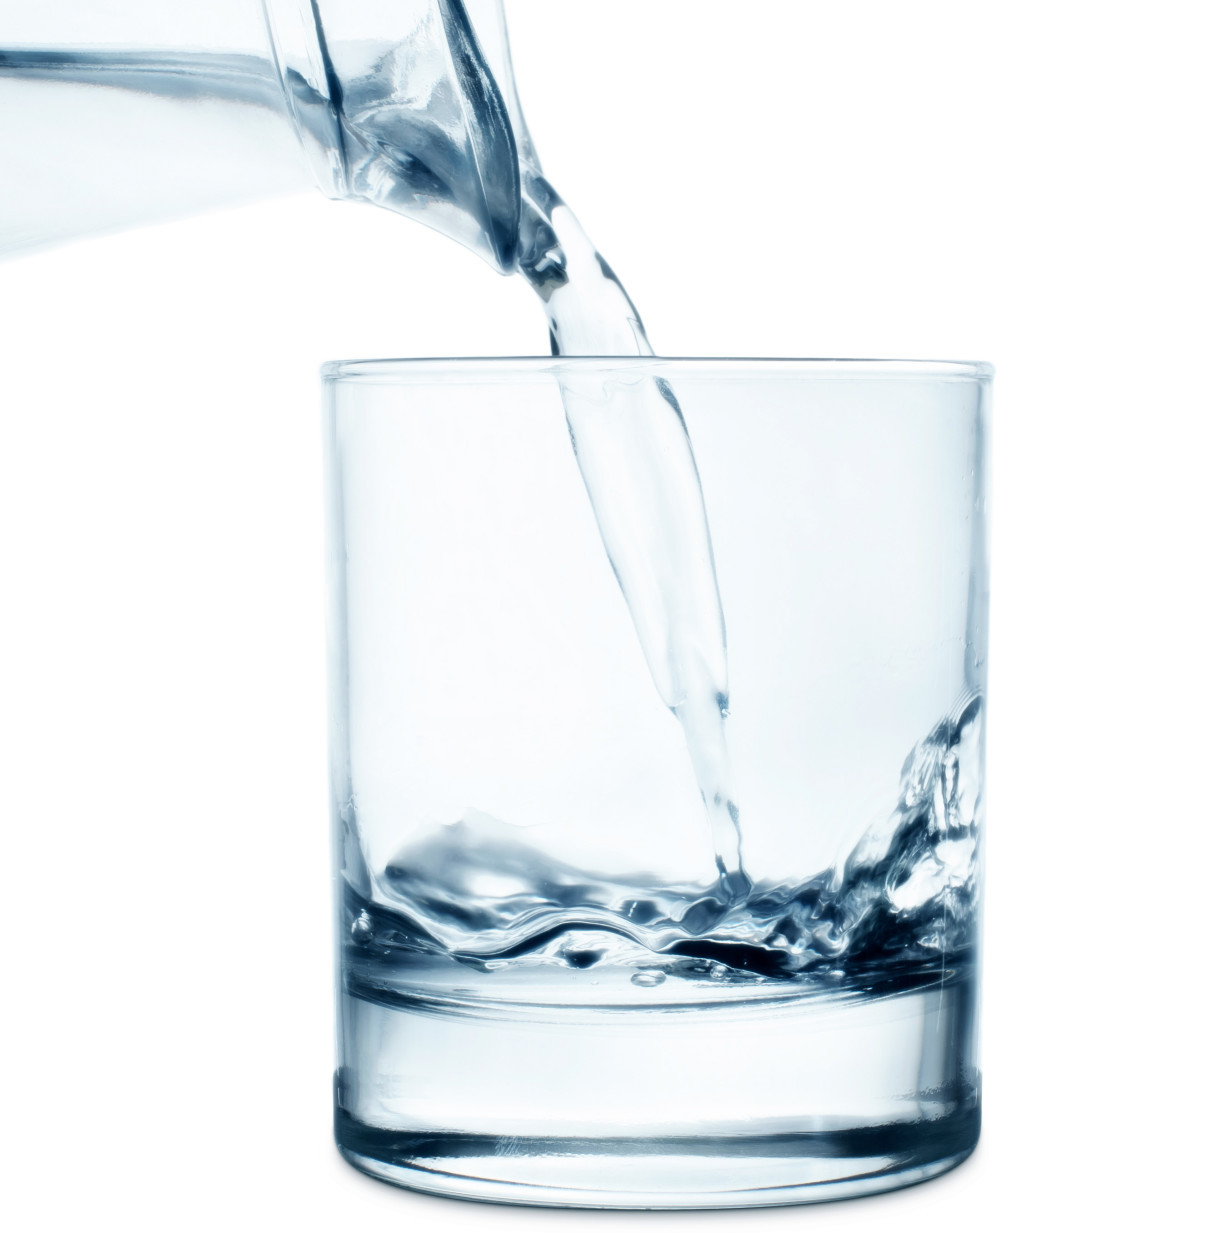 clean-water-image